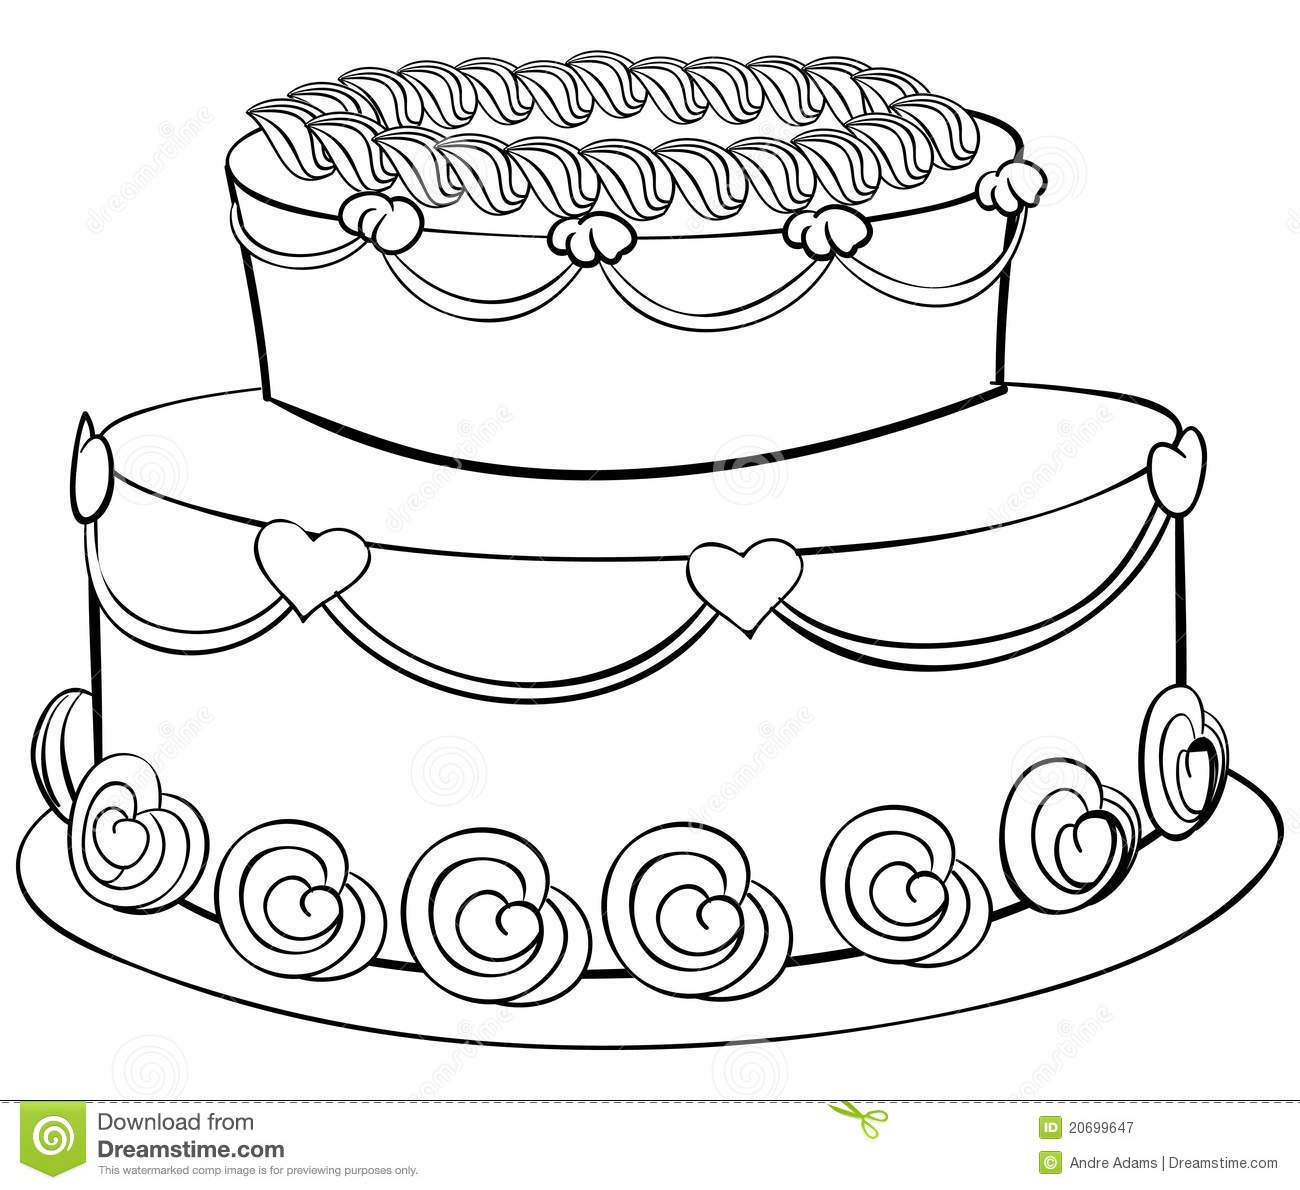 Tree coloring pages only coloring pages - Cake Outline Royalty Free Stock Photography Image 20699647